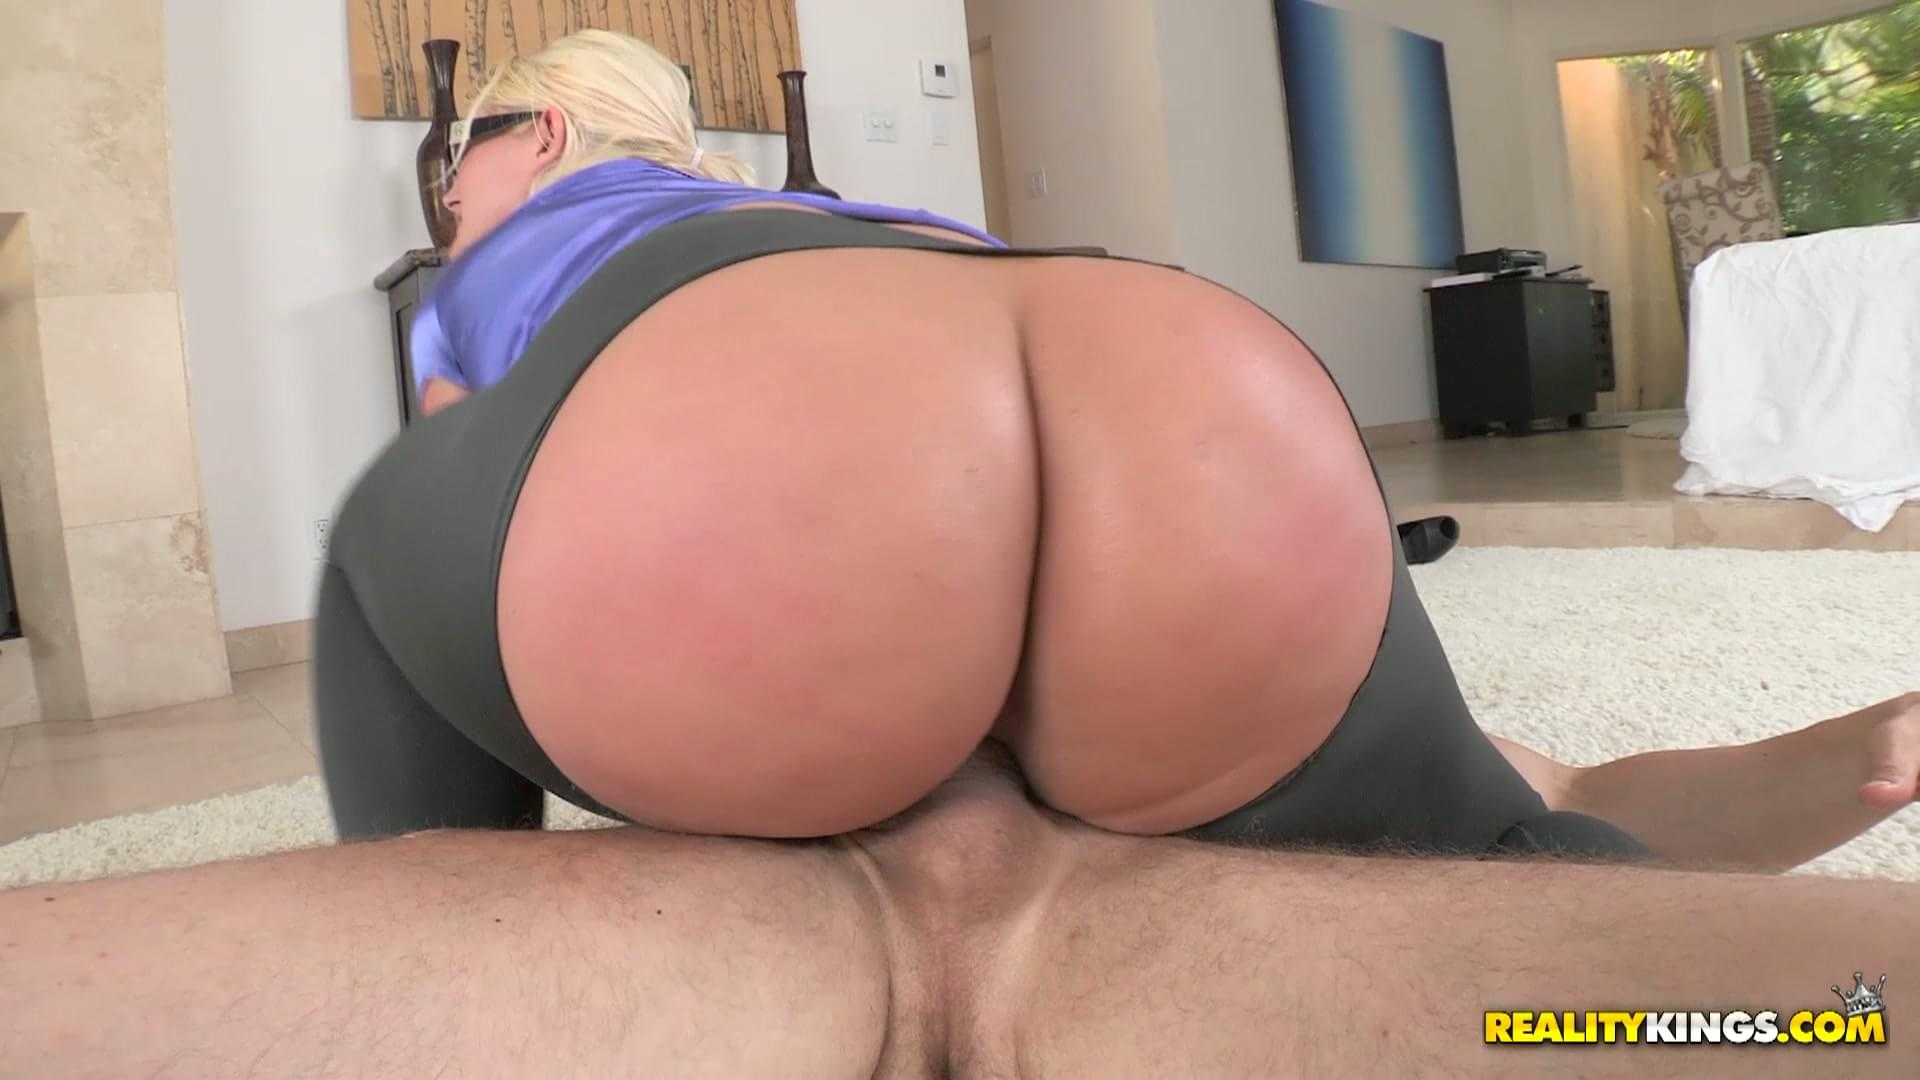 Big Ass For Cash